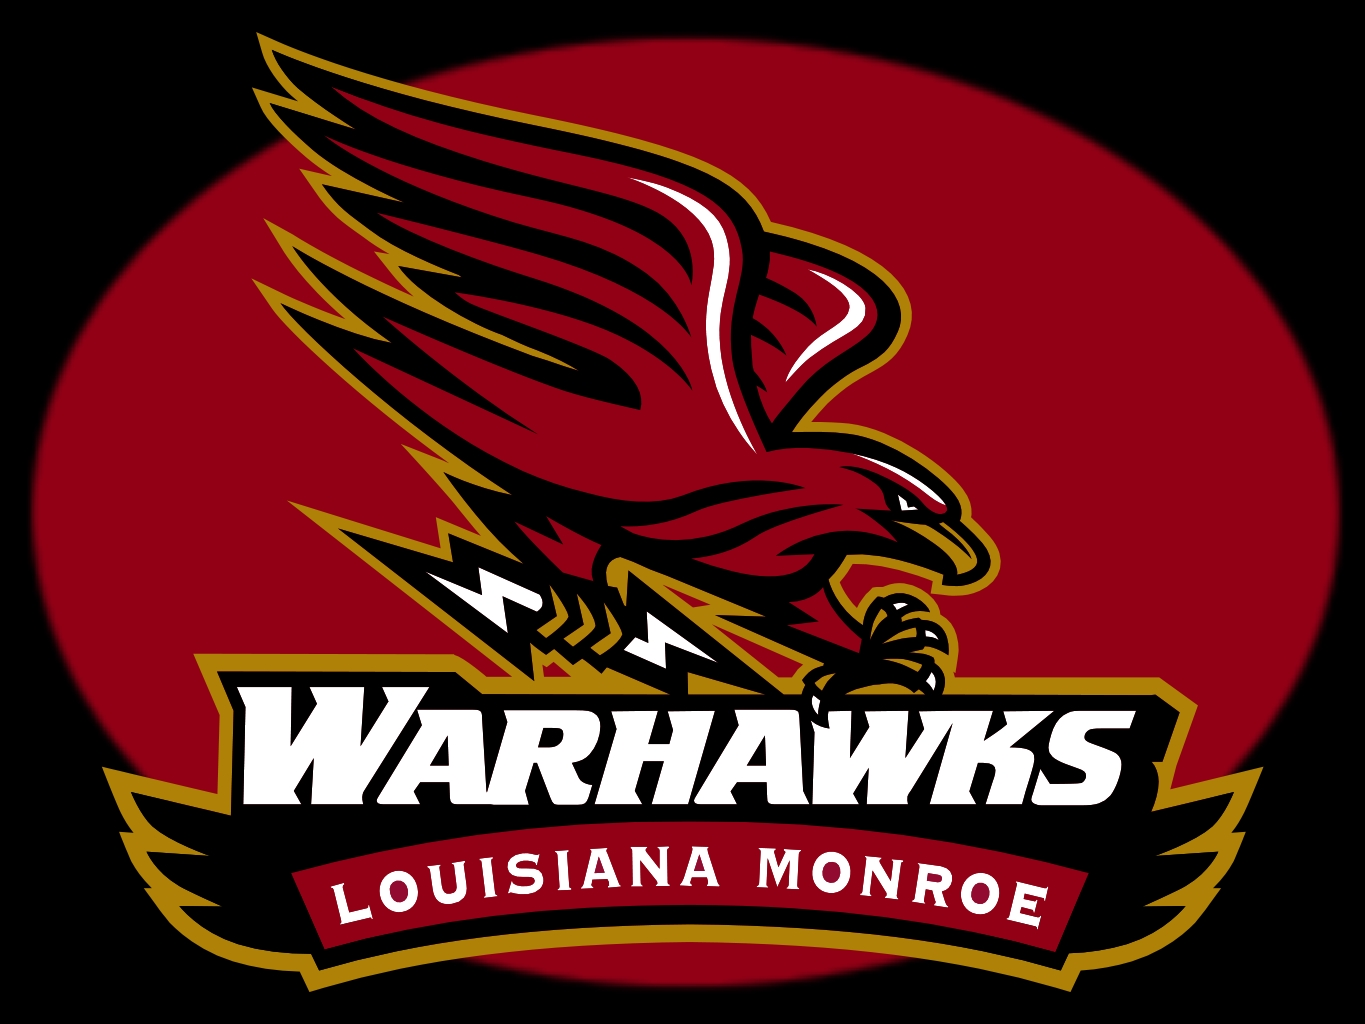 Louisiana Monroe Warhawks Tickets